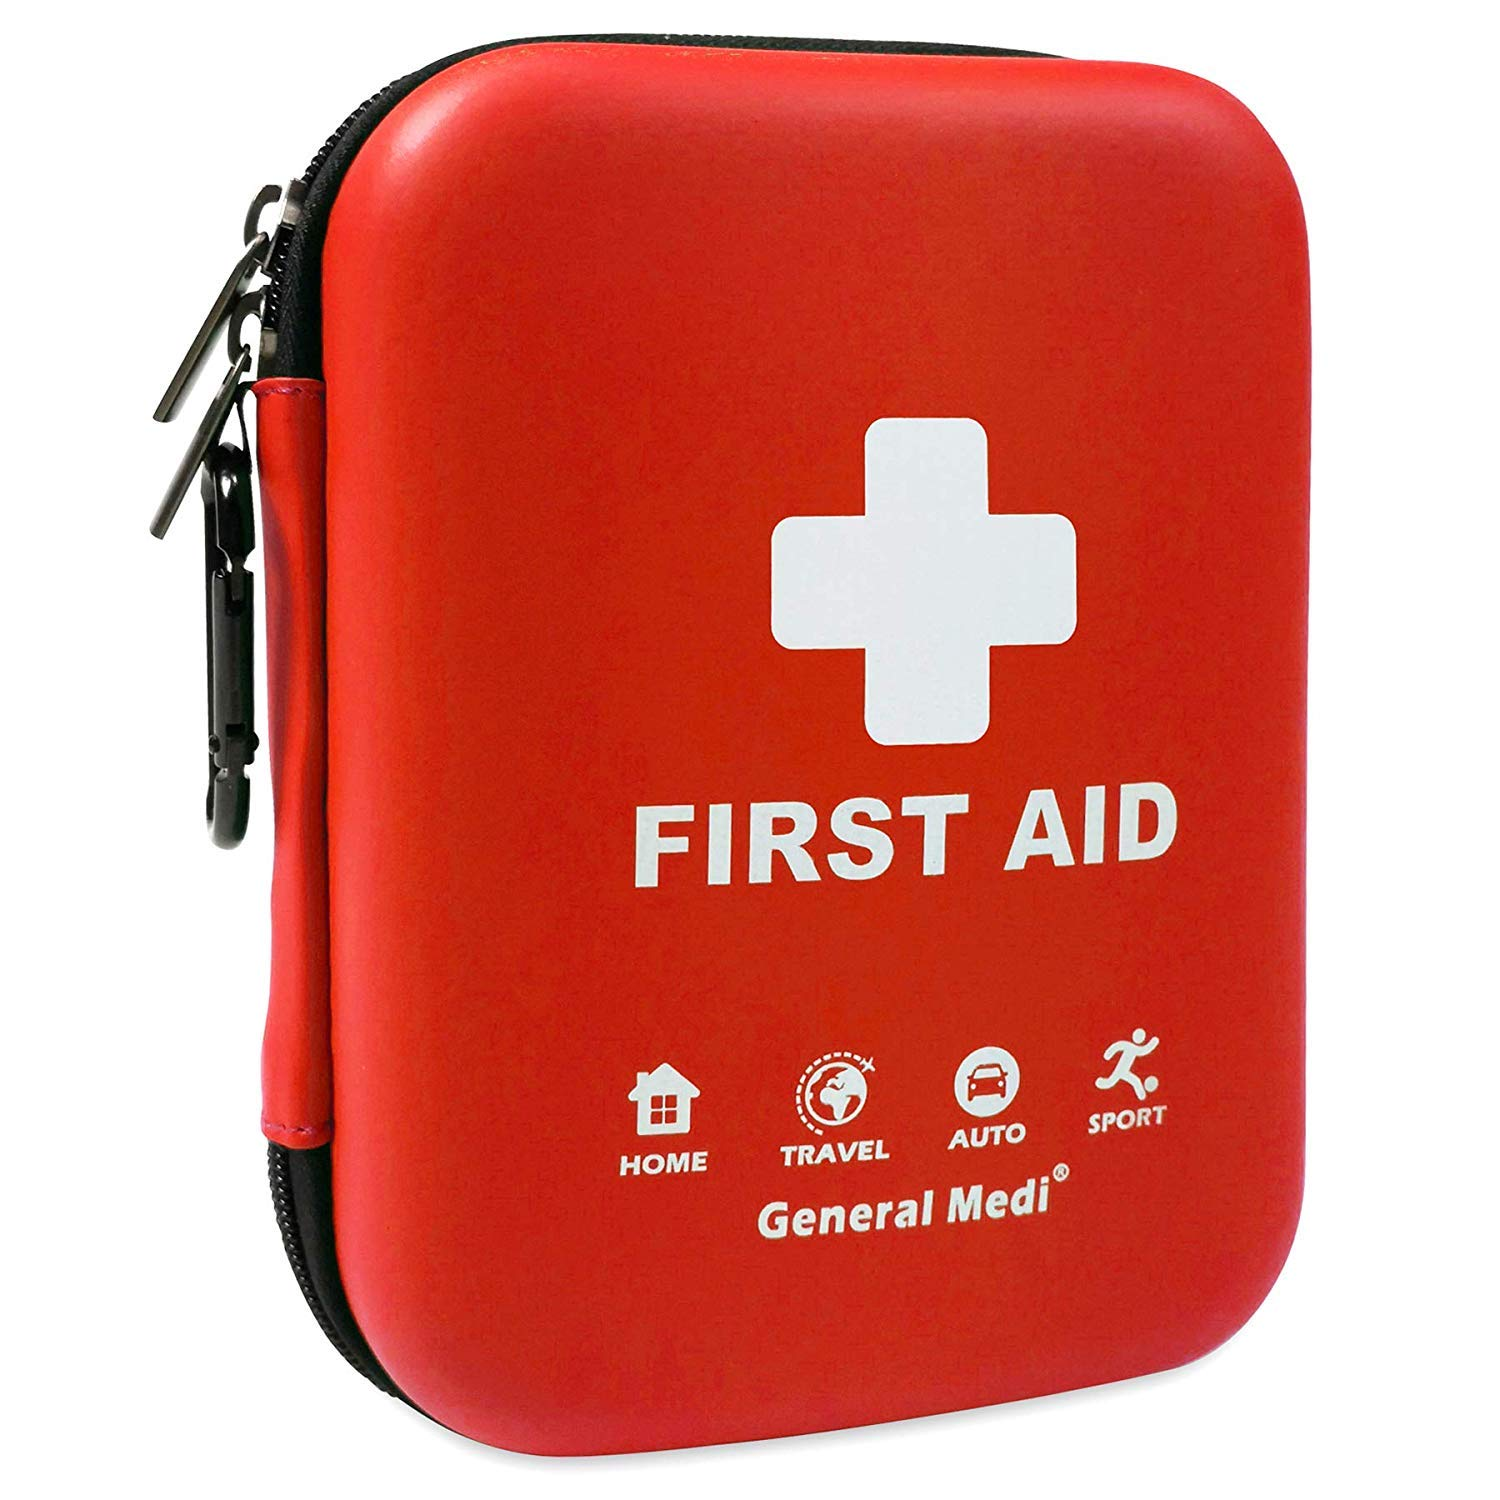 First Aid Kit - 170 Pieces Hard Case and Lightweight - Includes 2 x Eyewash,Instant Cold Pack,Emergency Blanket, CPR Face Mask for Travel, Home, Office, Vehicle, Camping, Workplace & Outdoor (Red)